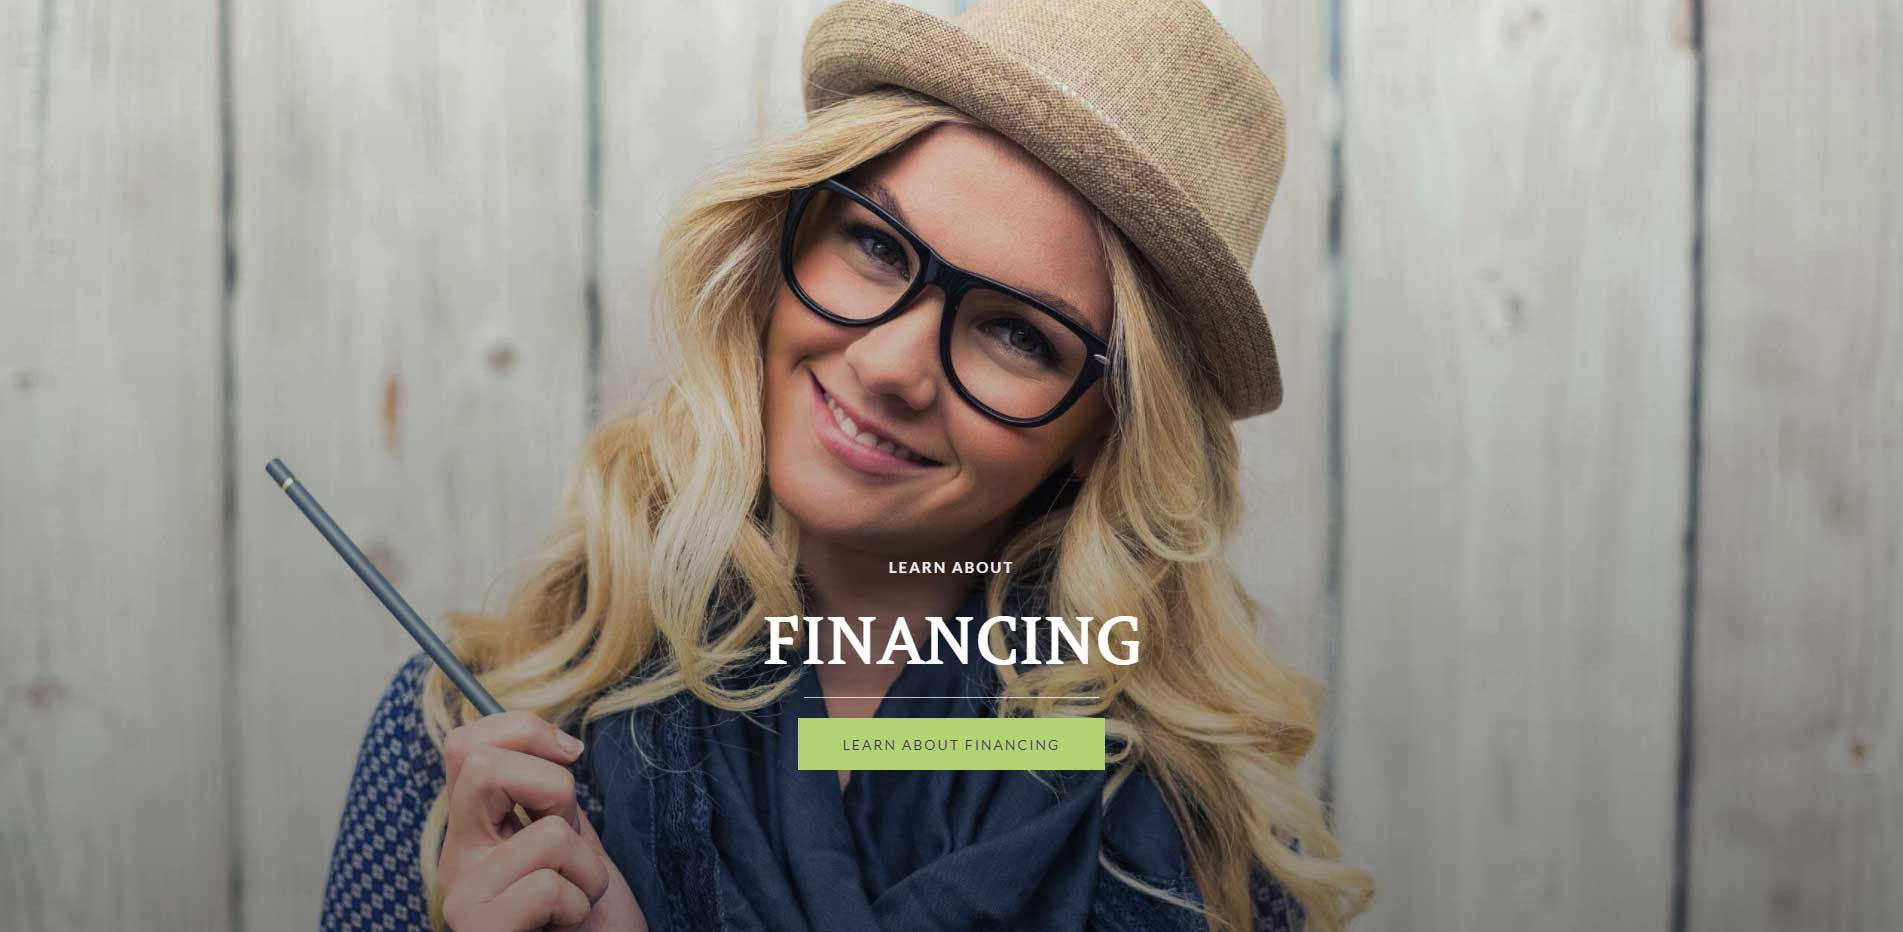 Learn about Financing